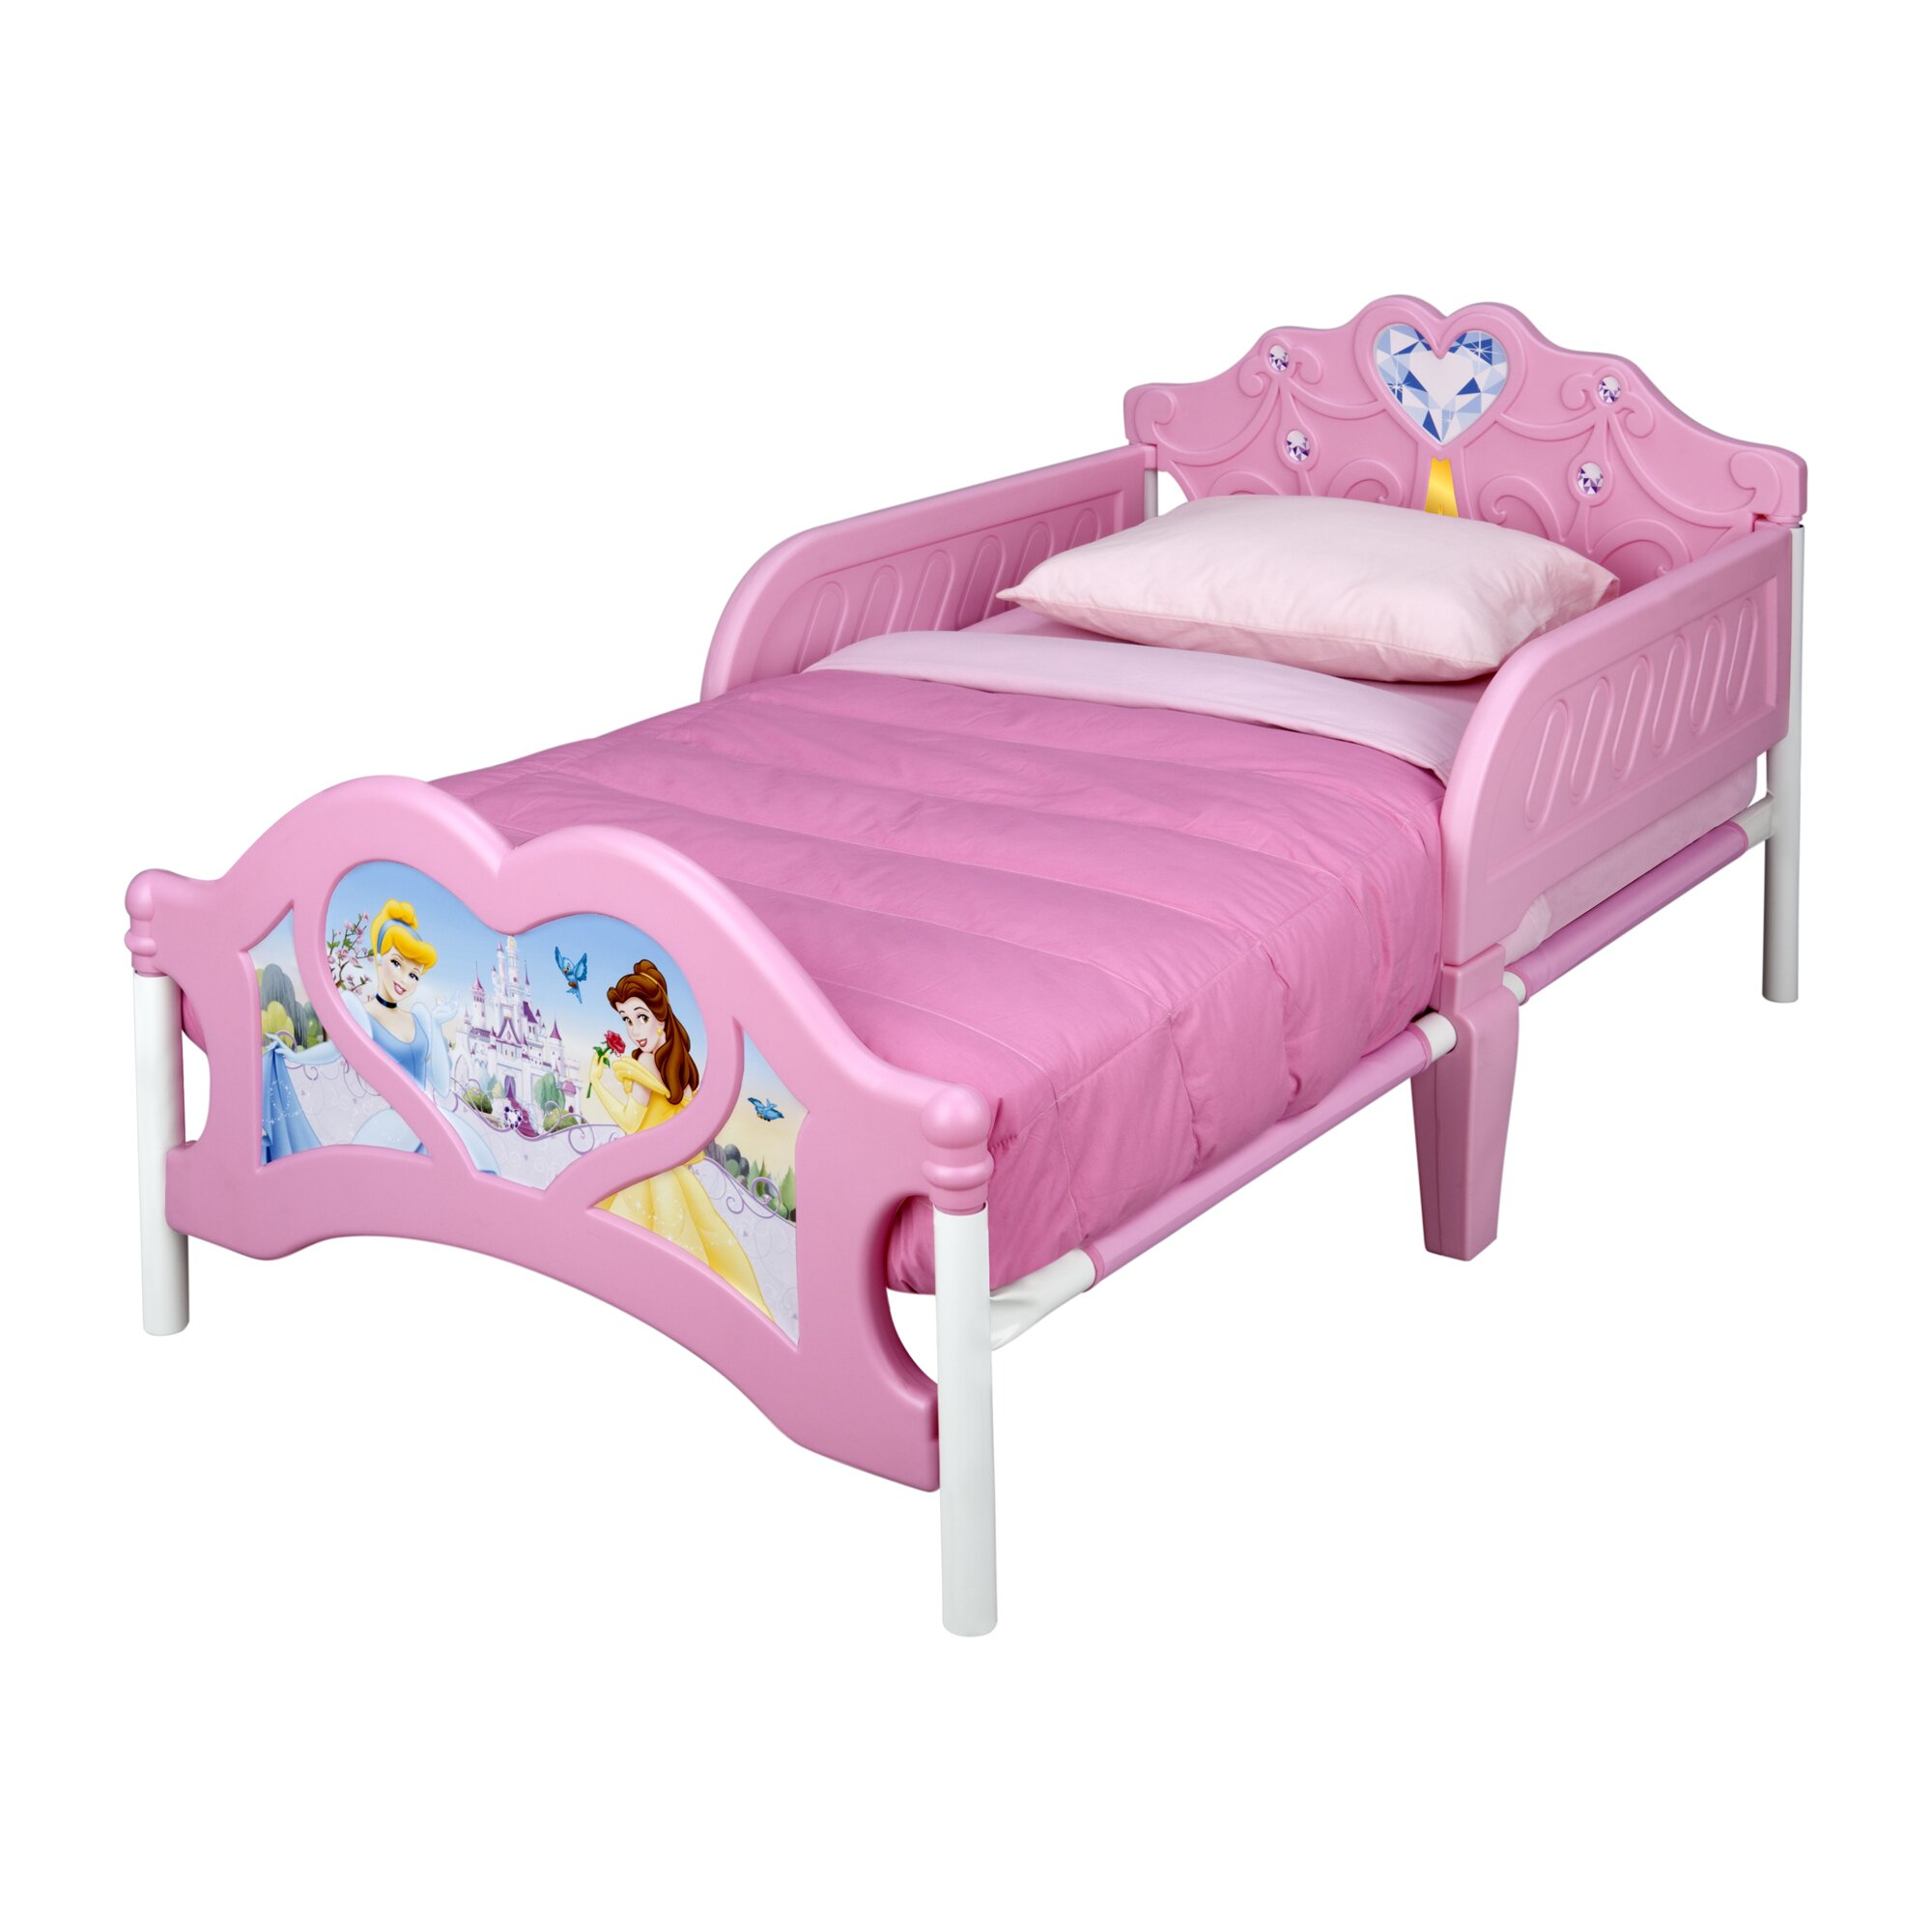 Disney Princess 3D Plastic Toddler Bed